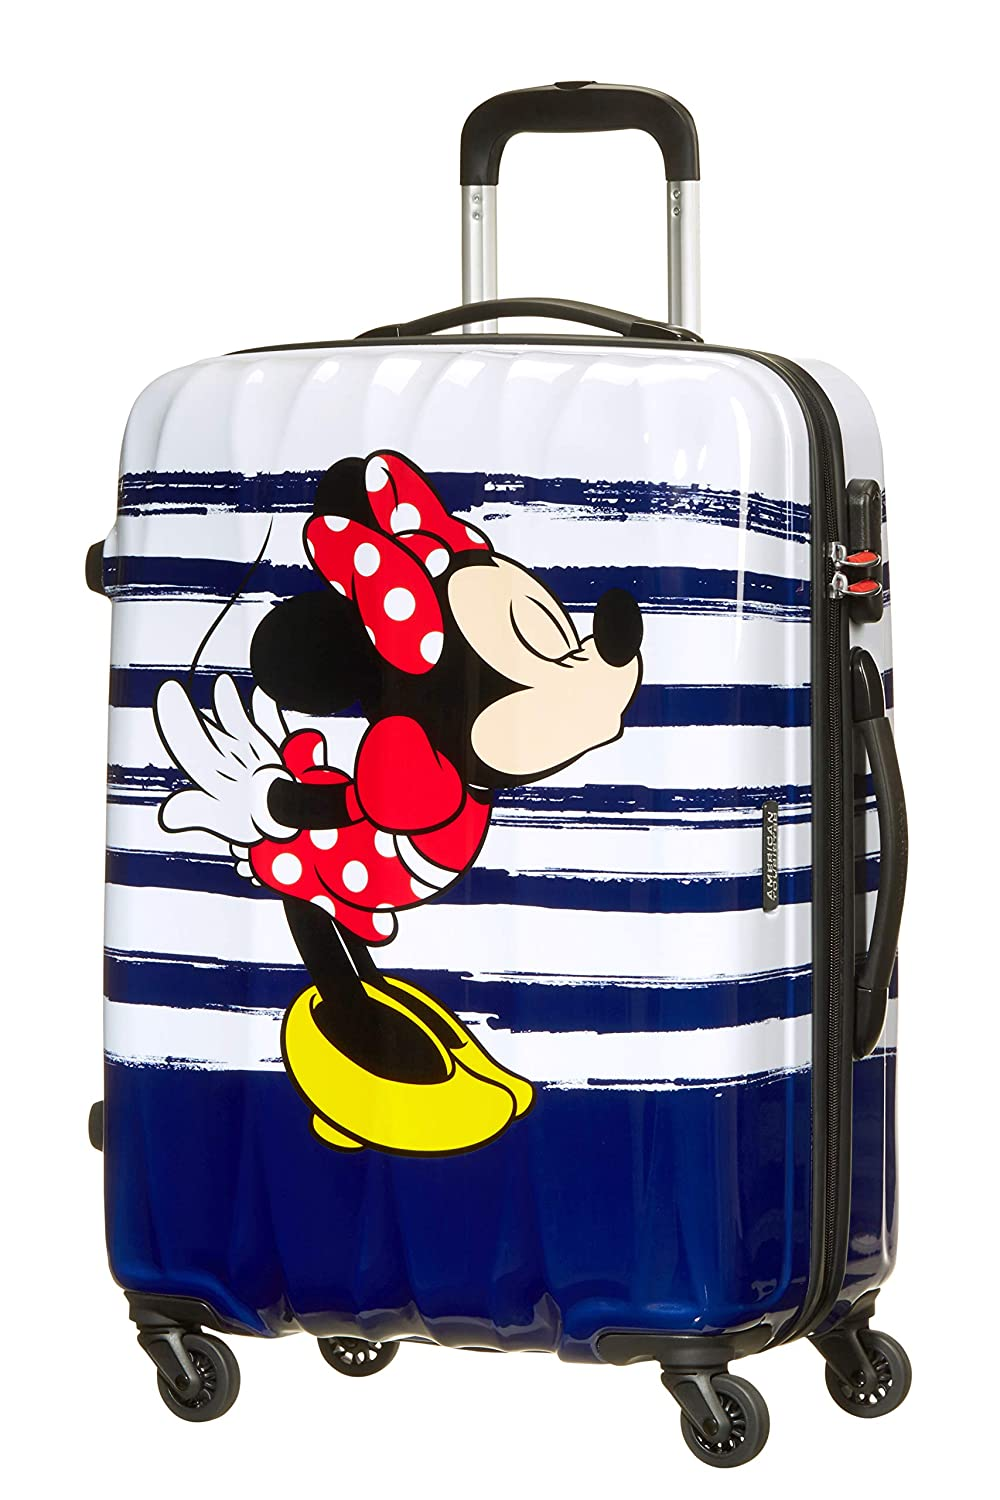 TROLLEY AMERICAN TOURISTER DISNEY LEGENDS SPINNER M 19C*007 MINNIE KISS 64479/6974